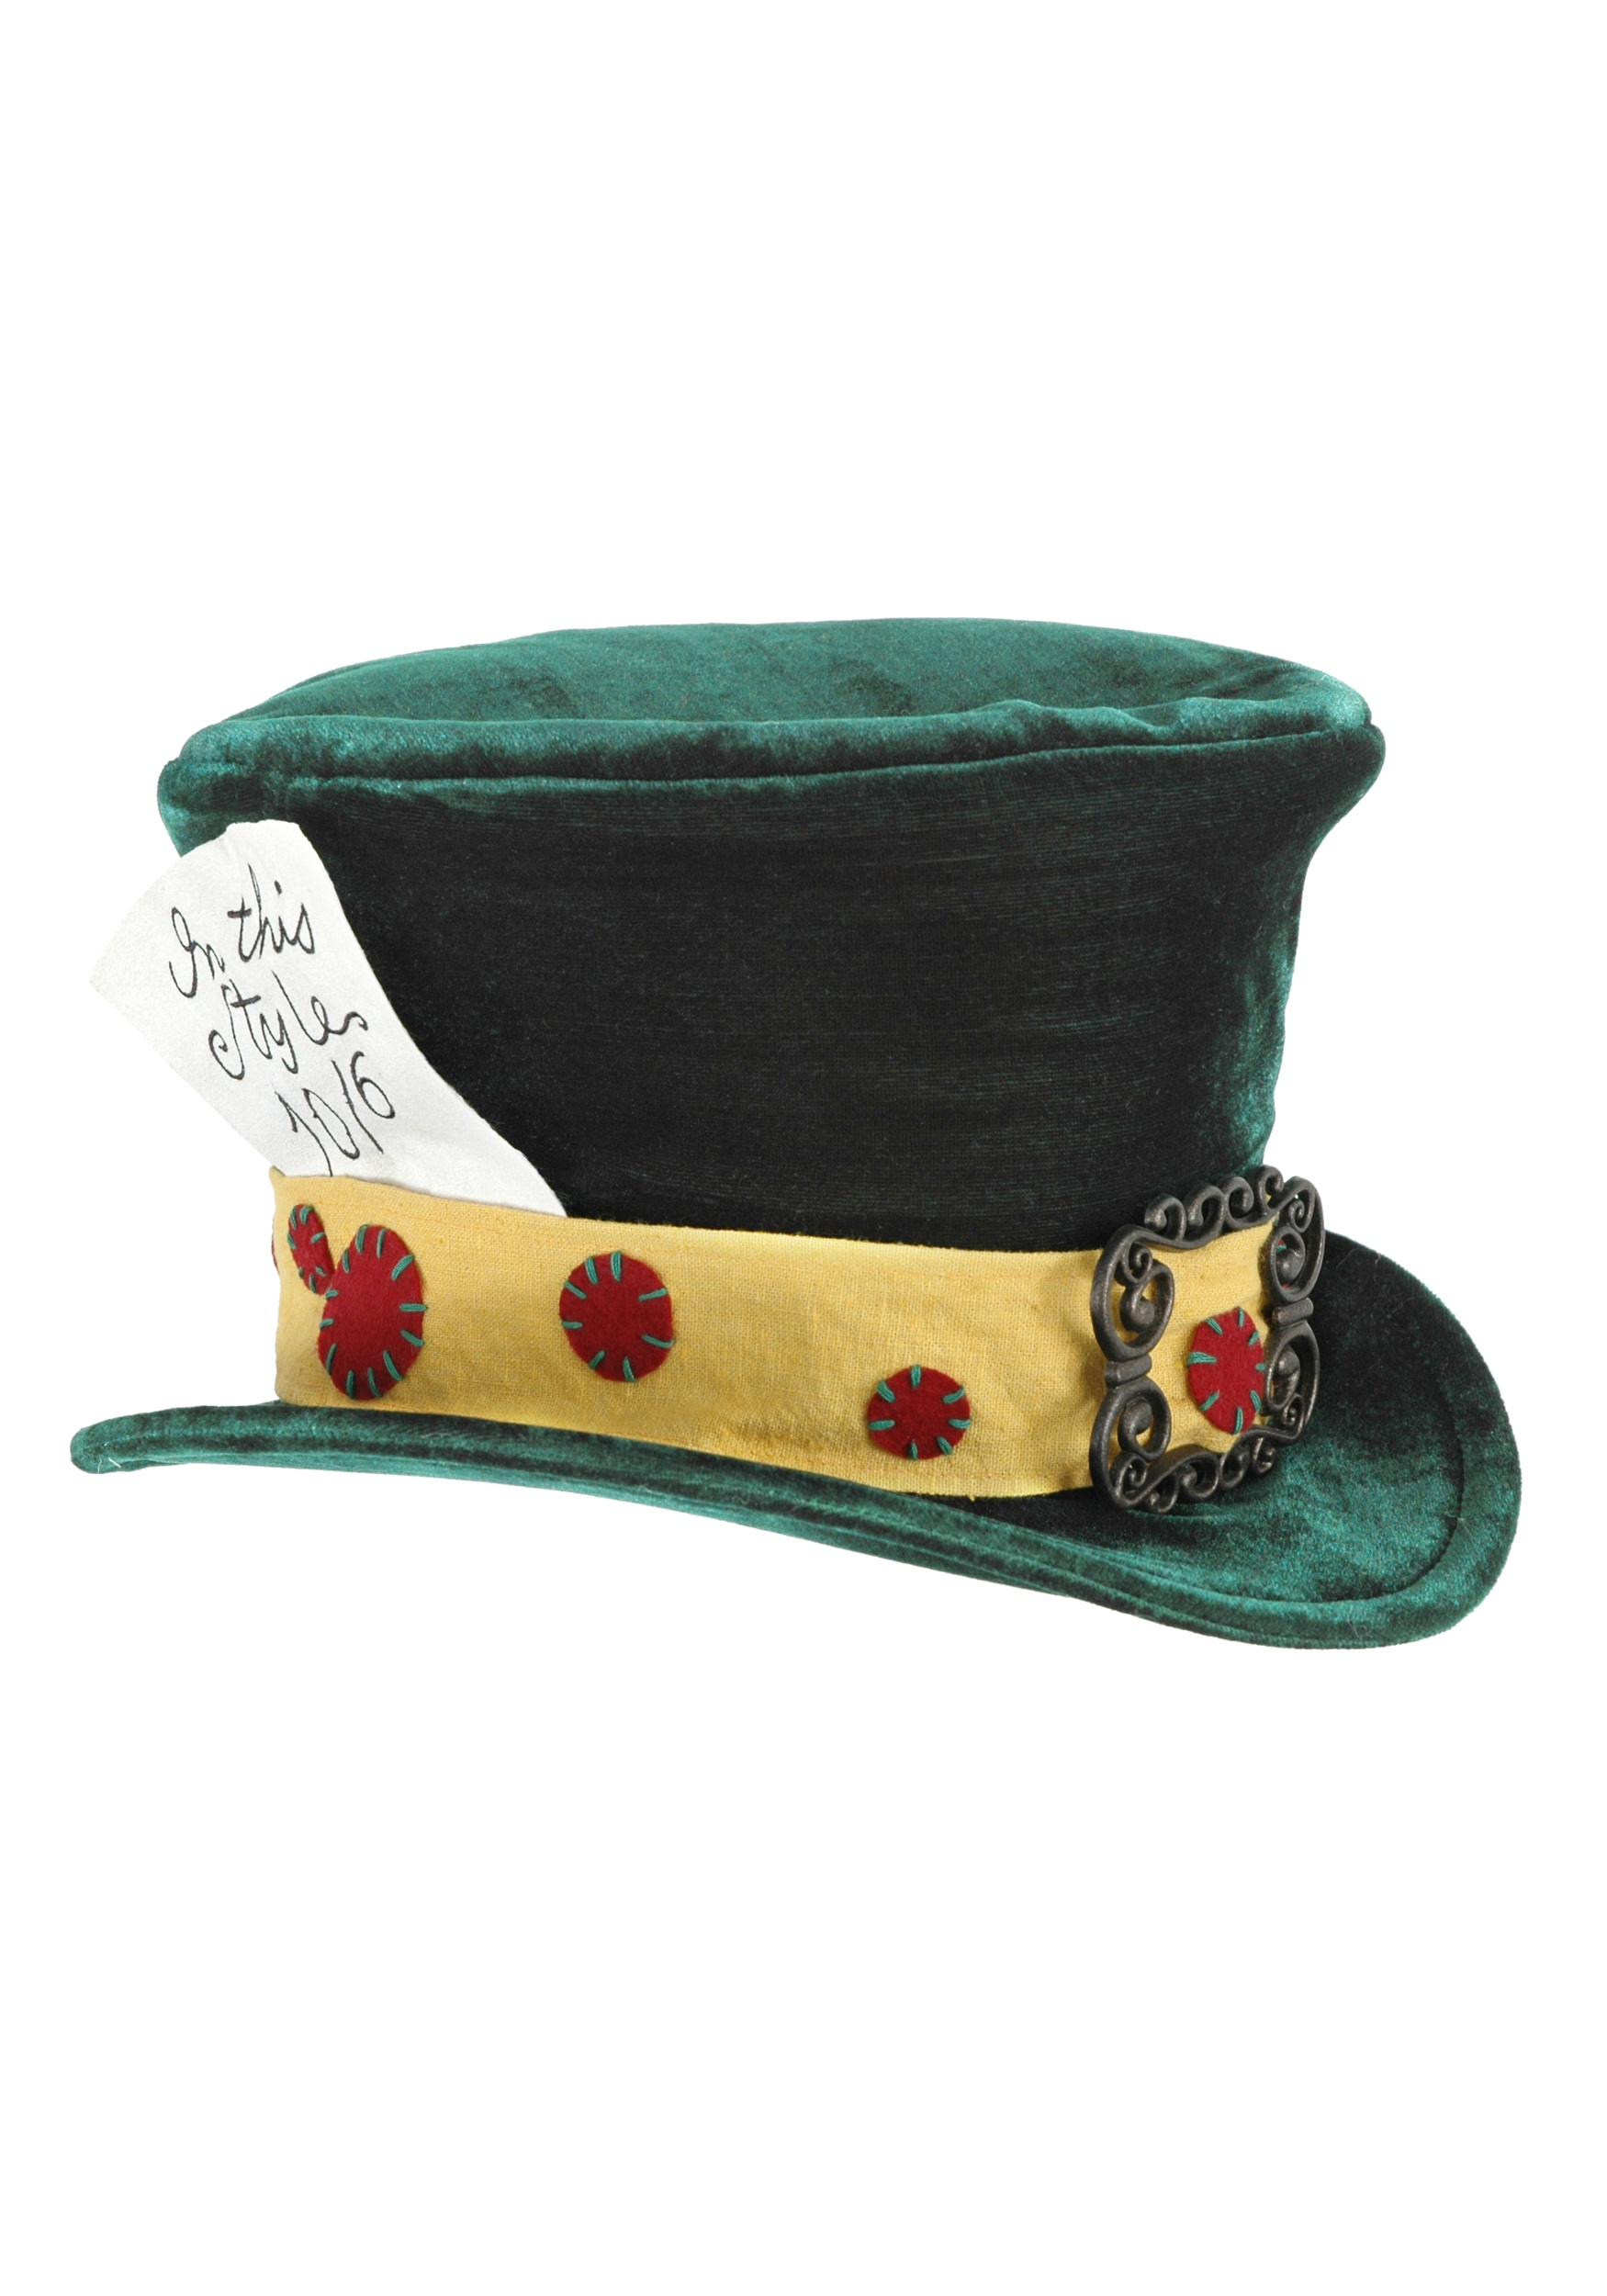 childs-mad-hatter-hat.jpg c138e3ed415